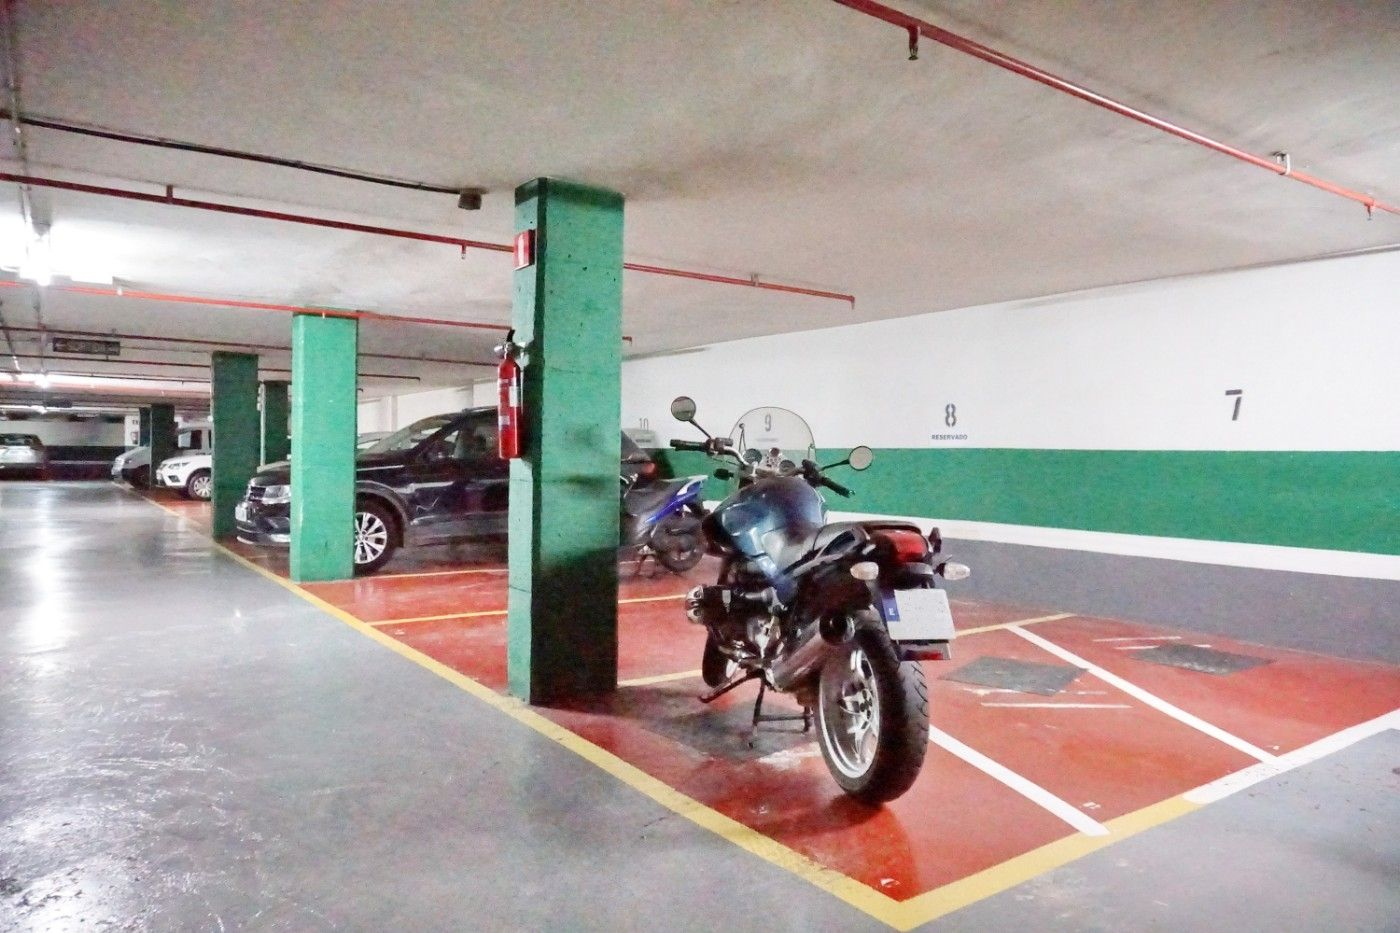 Parking moto en Carrer Napols, 116